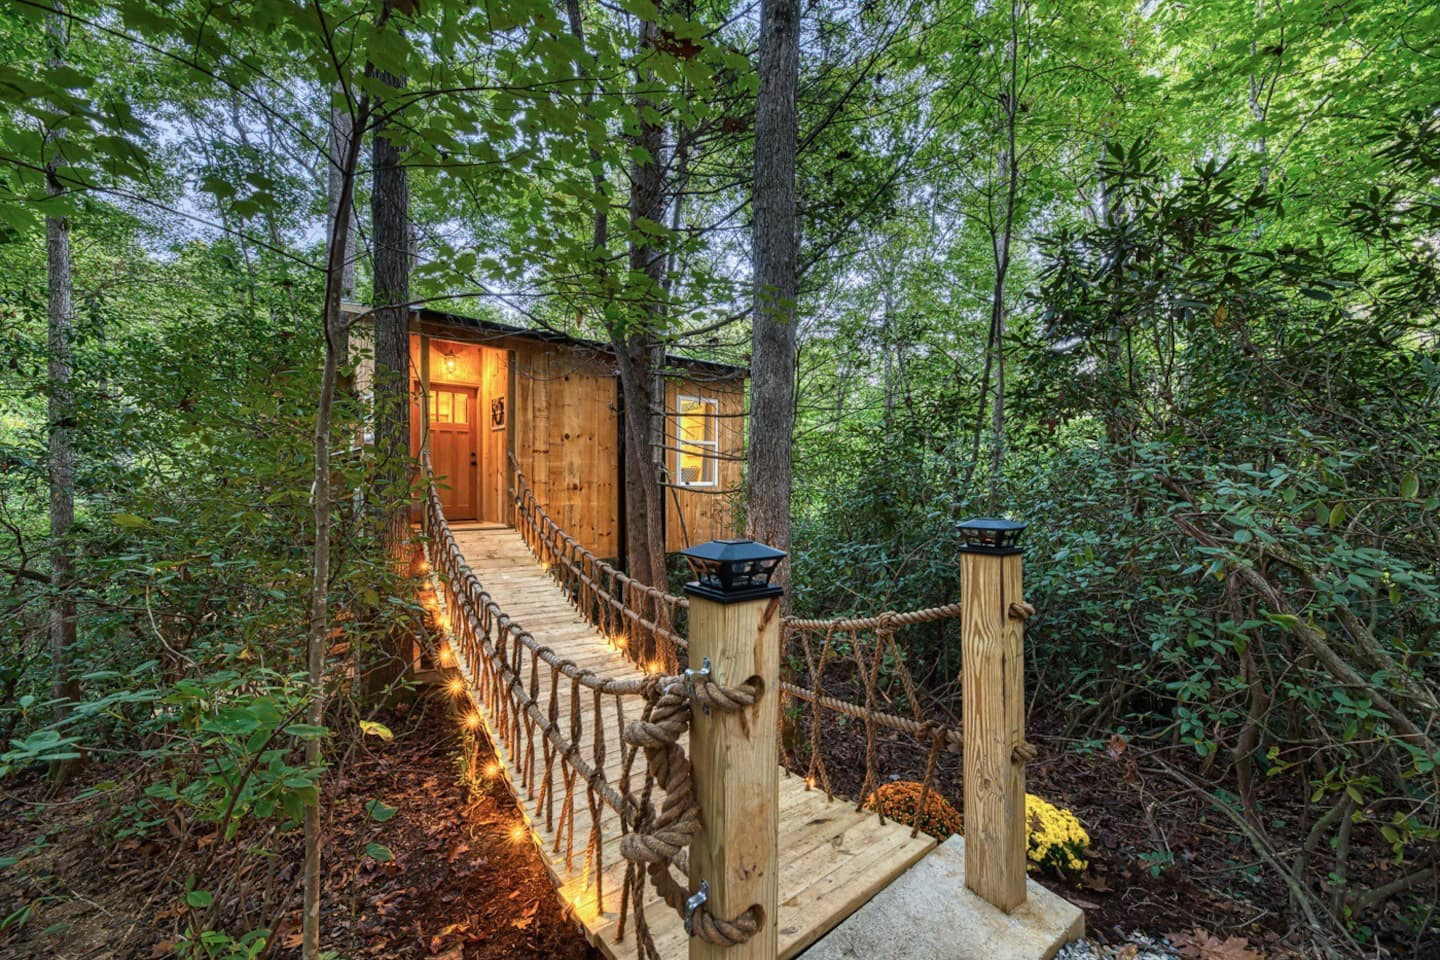 Luxurious Secluded Romantic Treehouse with Hot Tub